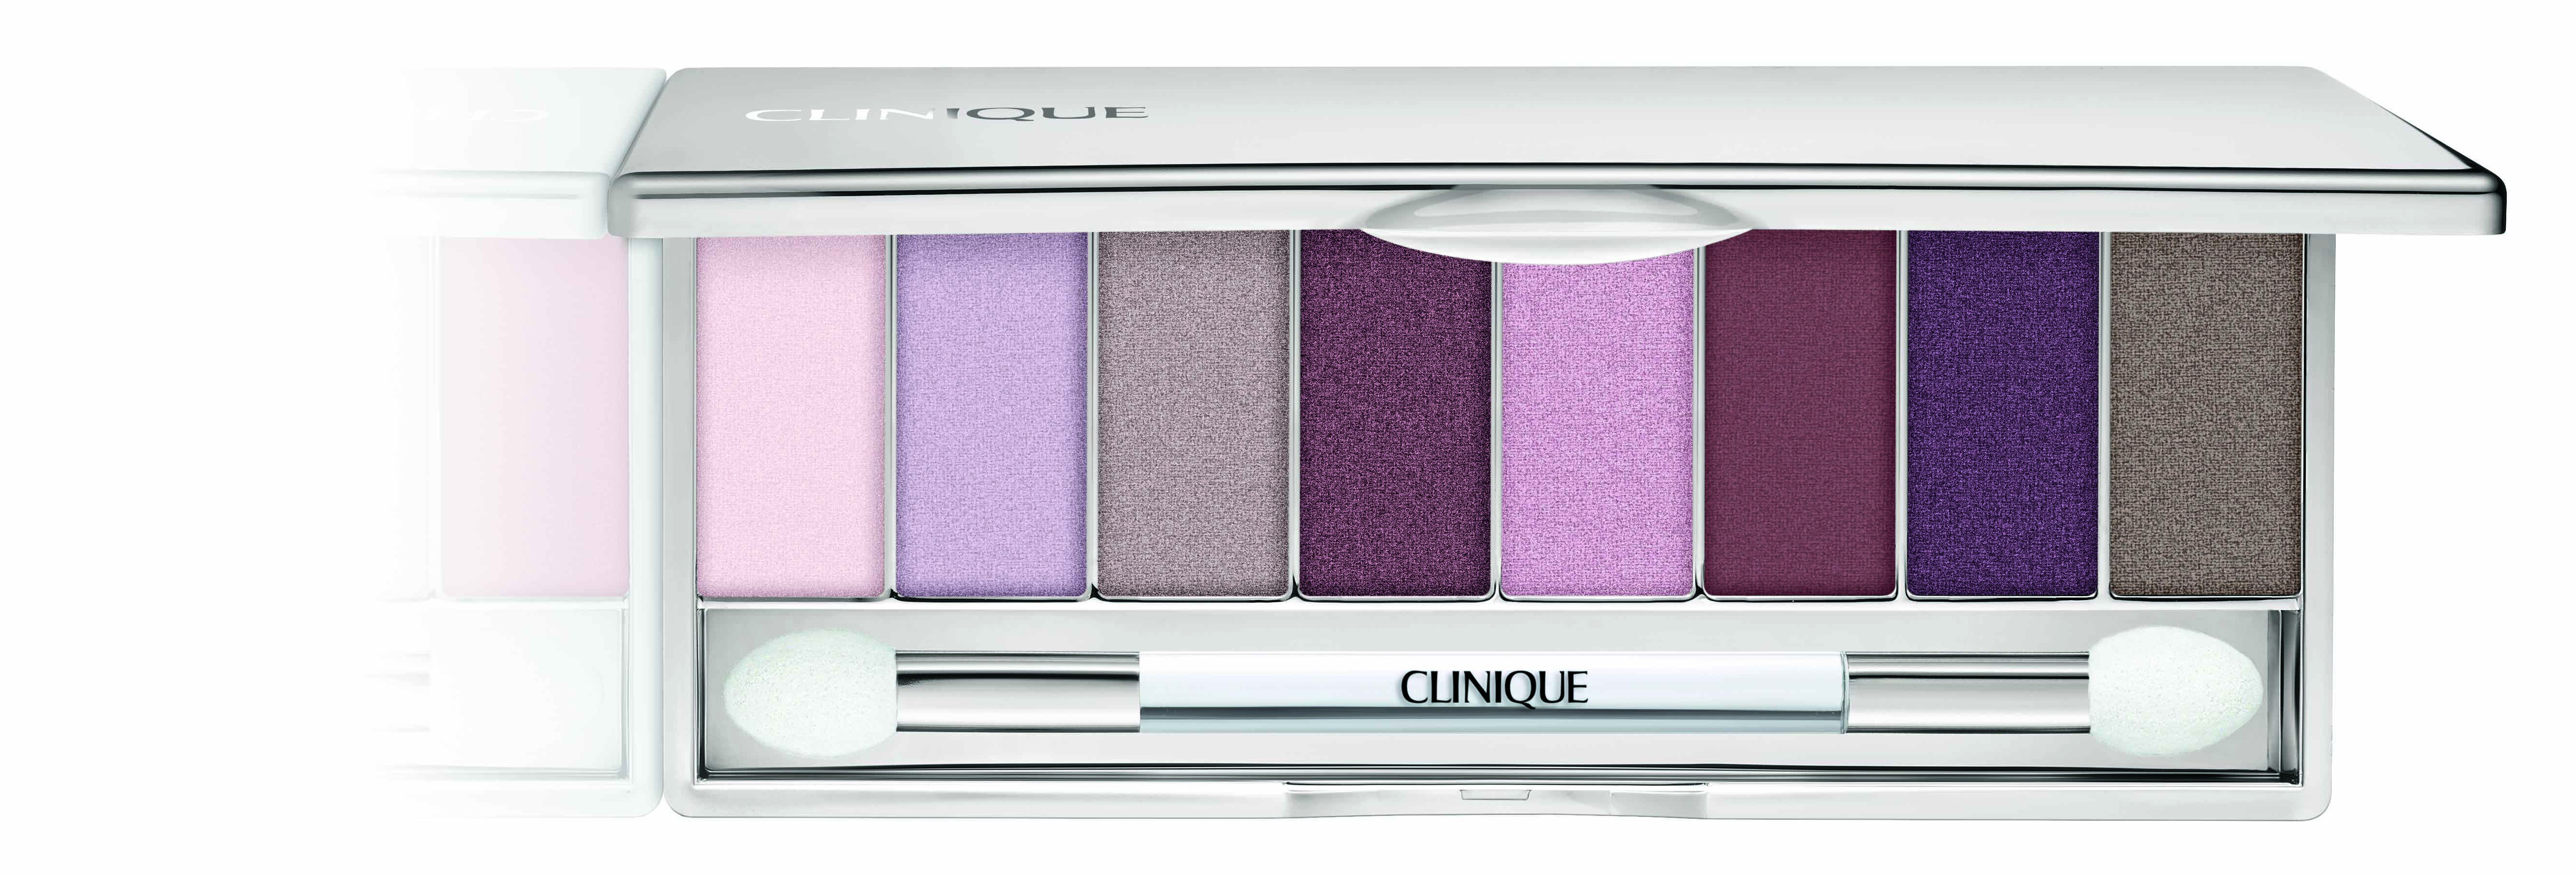 CLINIQUE Wear Everywhere Pinks GLOBAL